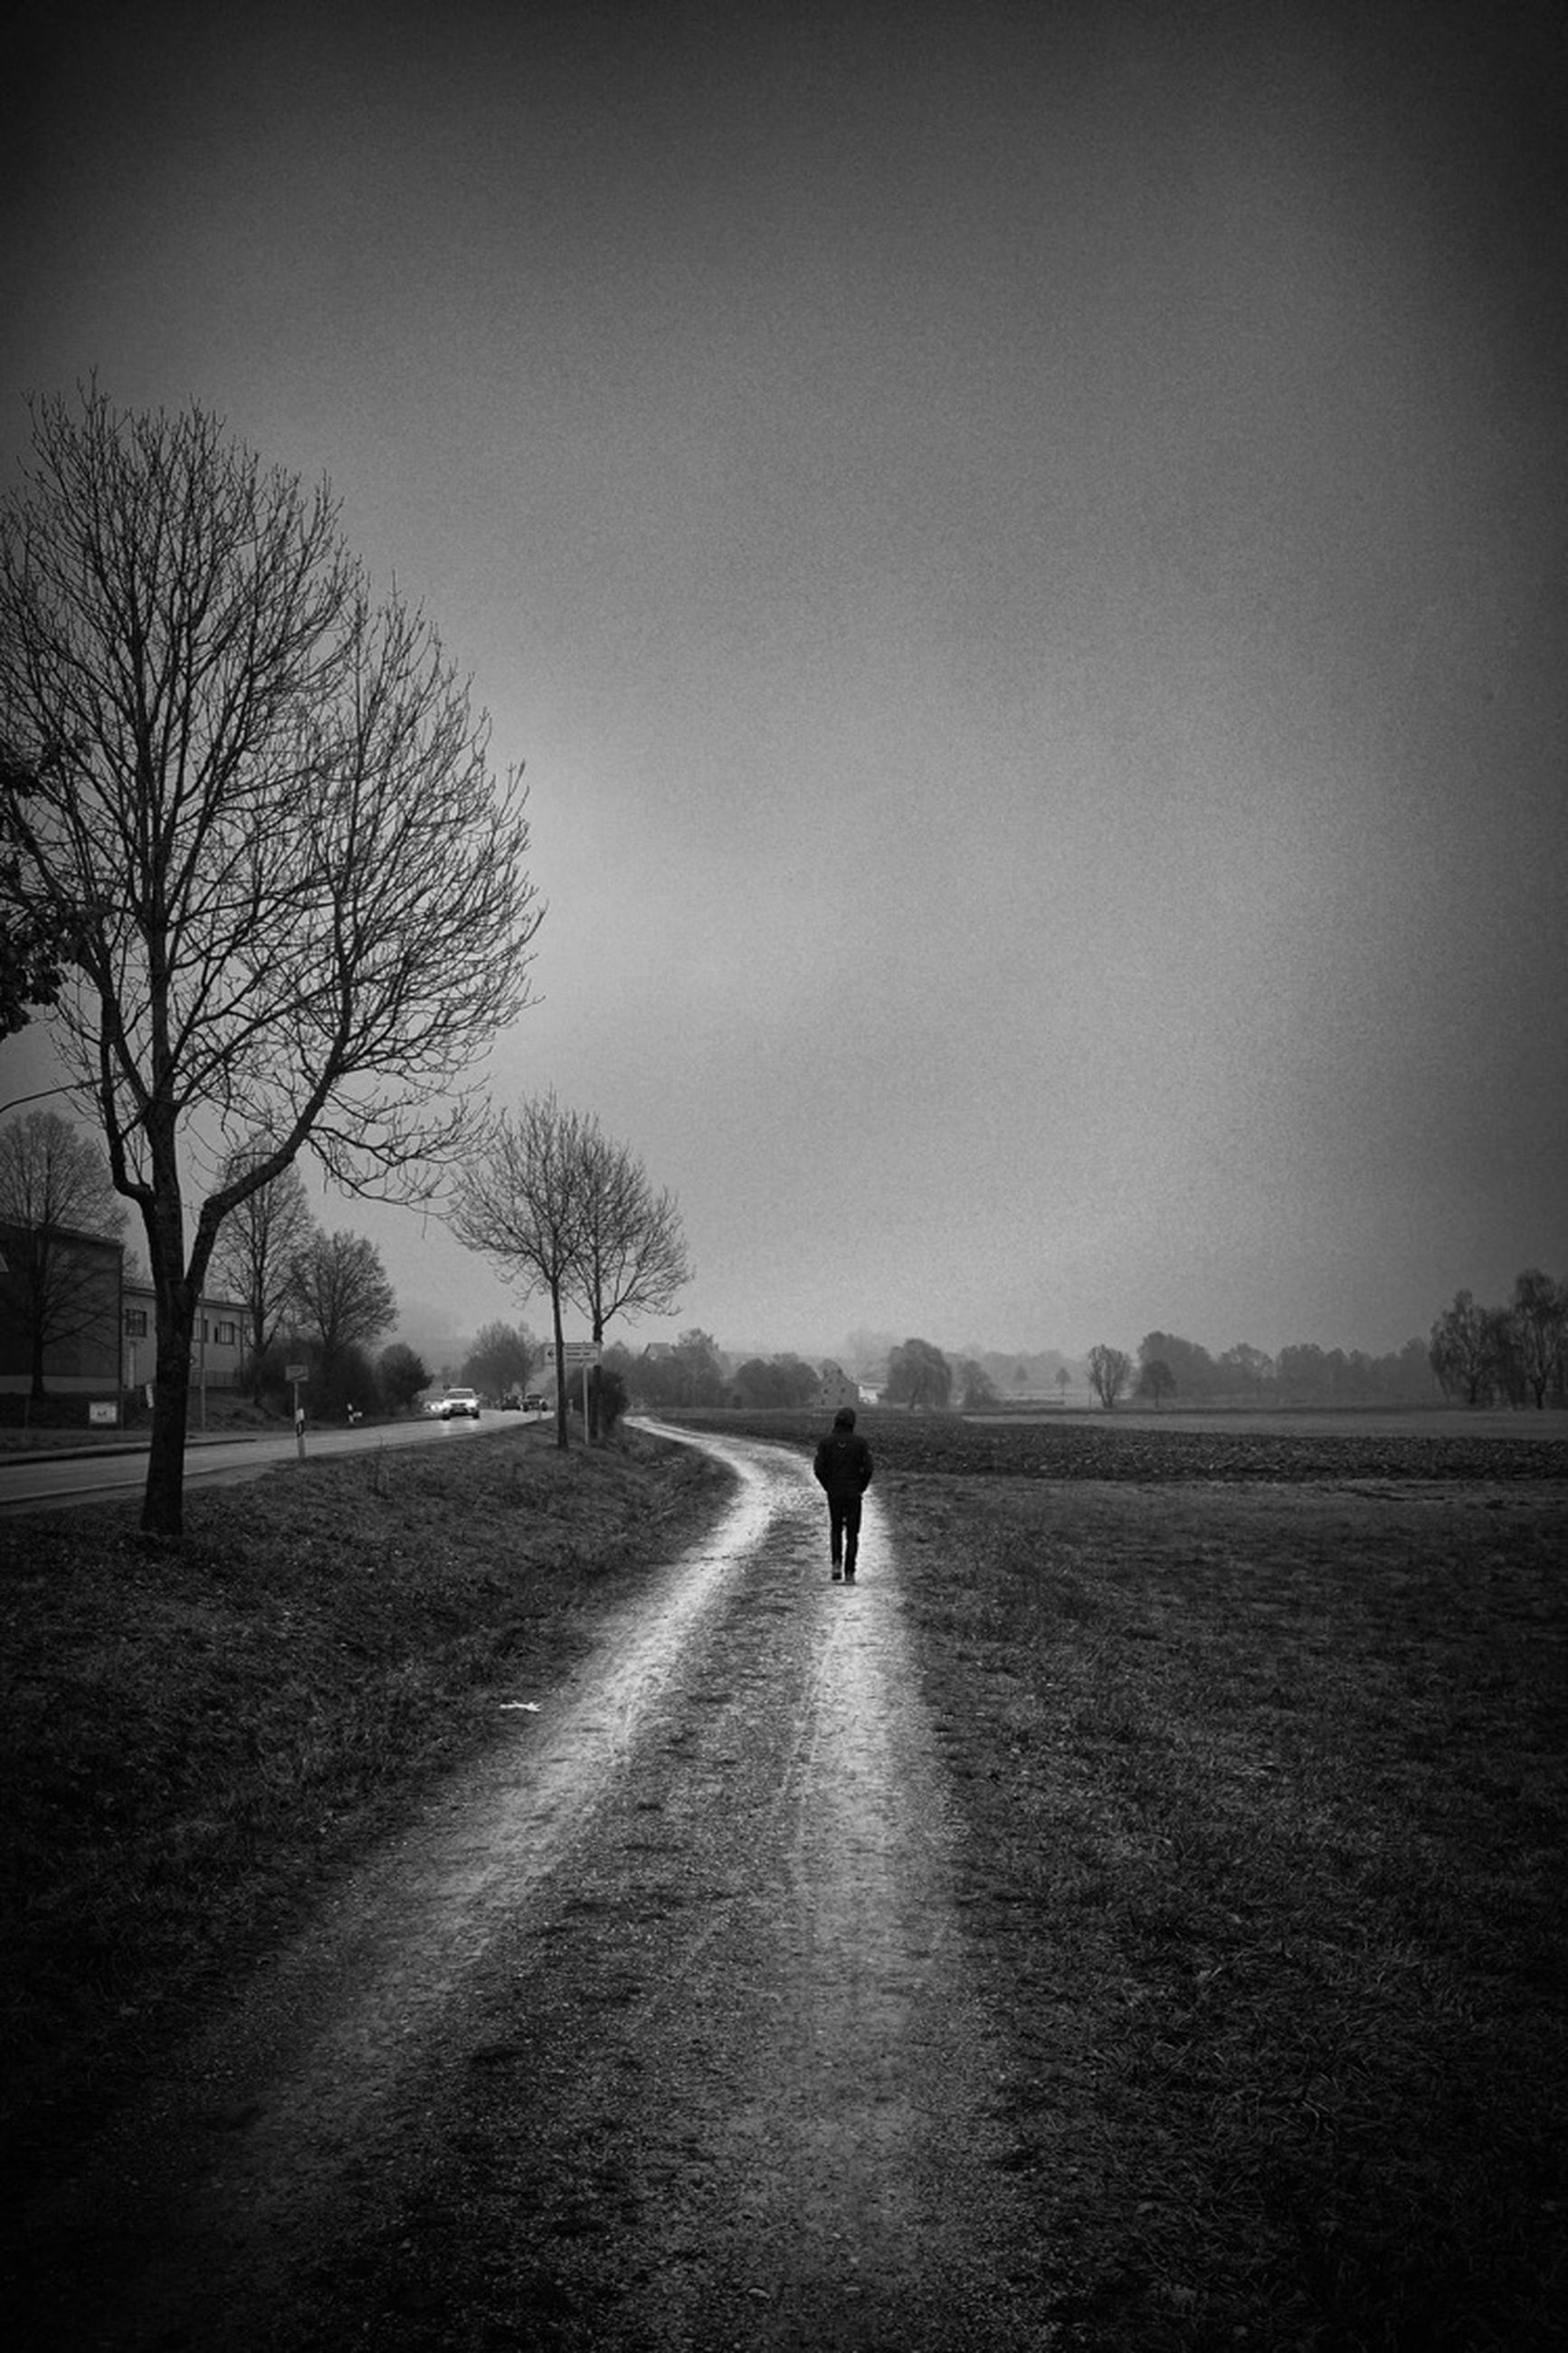 darkness, black and white, tree, morning, sky, monochrome, monochrome photography, black, plant, nature, one person, white, light, bare tree, silhouette, environment, horizon, full length, road, landscape, cloud, walking, land, dawn, transportation, mist, tranquility, sunlight, outdoors, solitude, beauty in nature, tranquil scene, the way forward, rear view, fog, scenics - nature, field, adult, men, loneliness, vignette